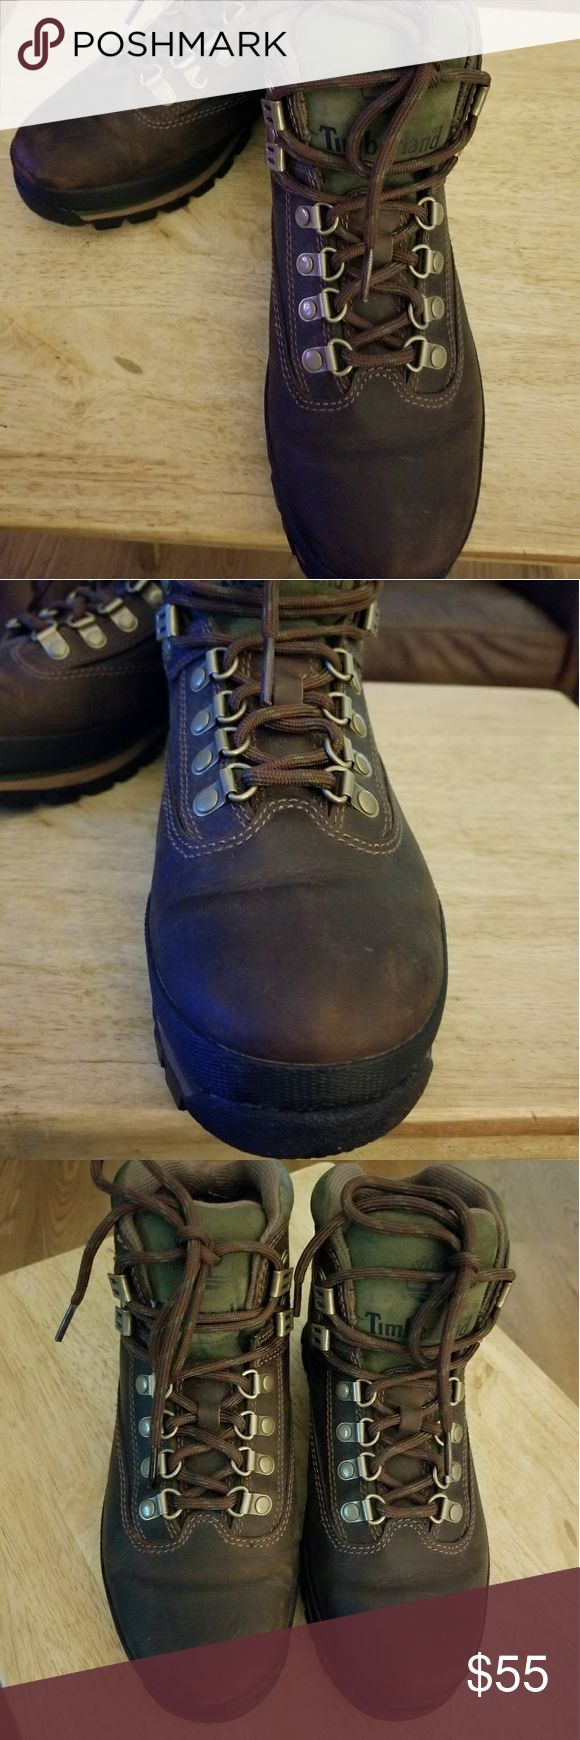 Timberland Women's hiking boot (7) Size 7 U.S. Women's  In really great condition.  No run down soles.   Excellent condition.    Brown leather and olive green tongue. Timberland Shoes Winter & Rain Boots